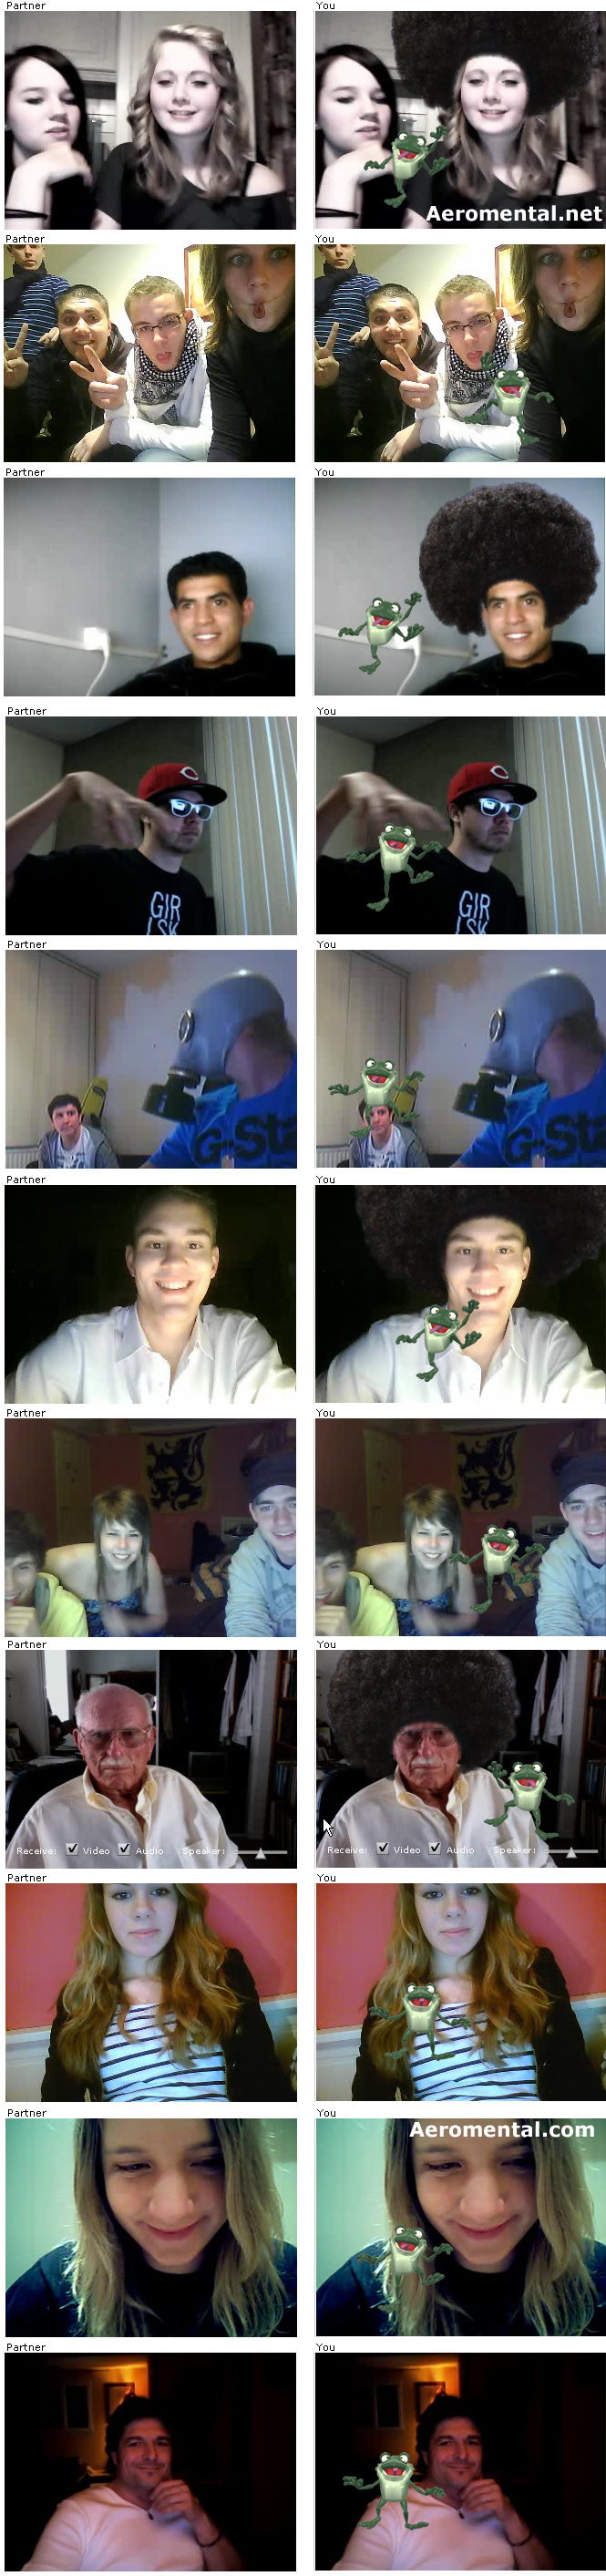 Chatroulette screenshots Dancing Frog